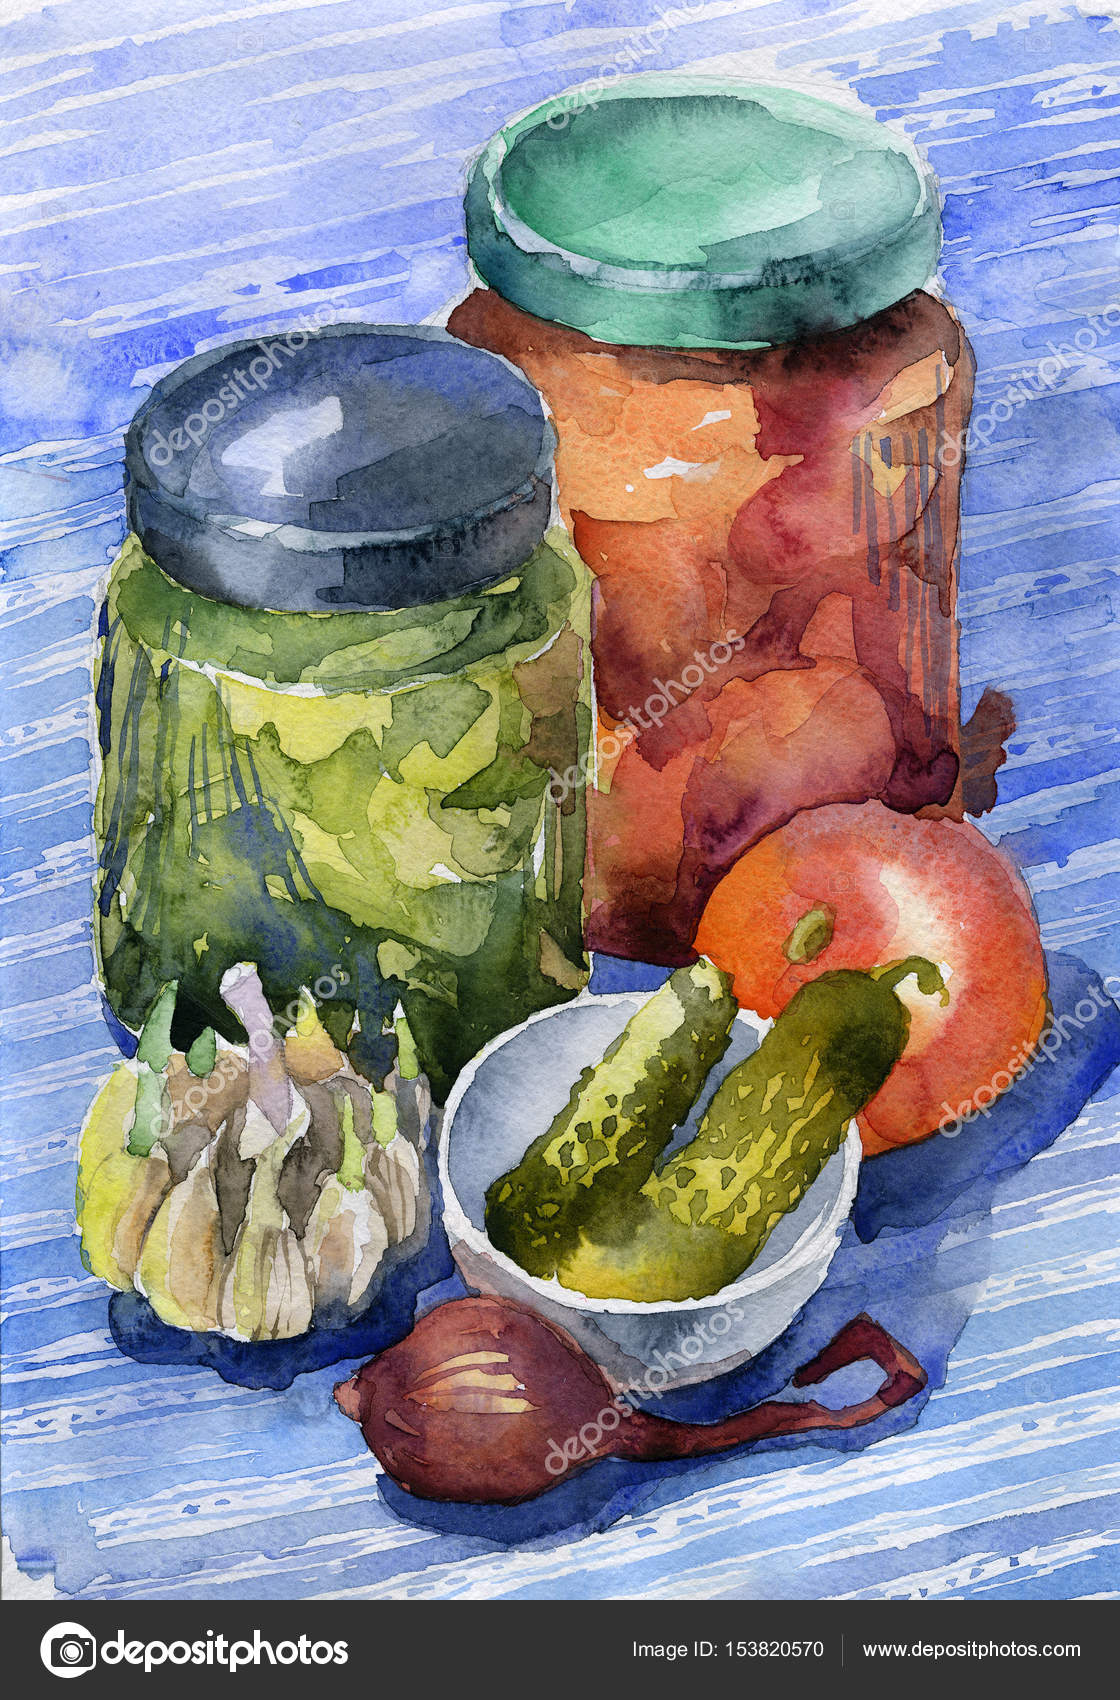 Vegetable Canned Food Vegetables In Glass Jars Tomatoes